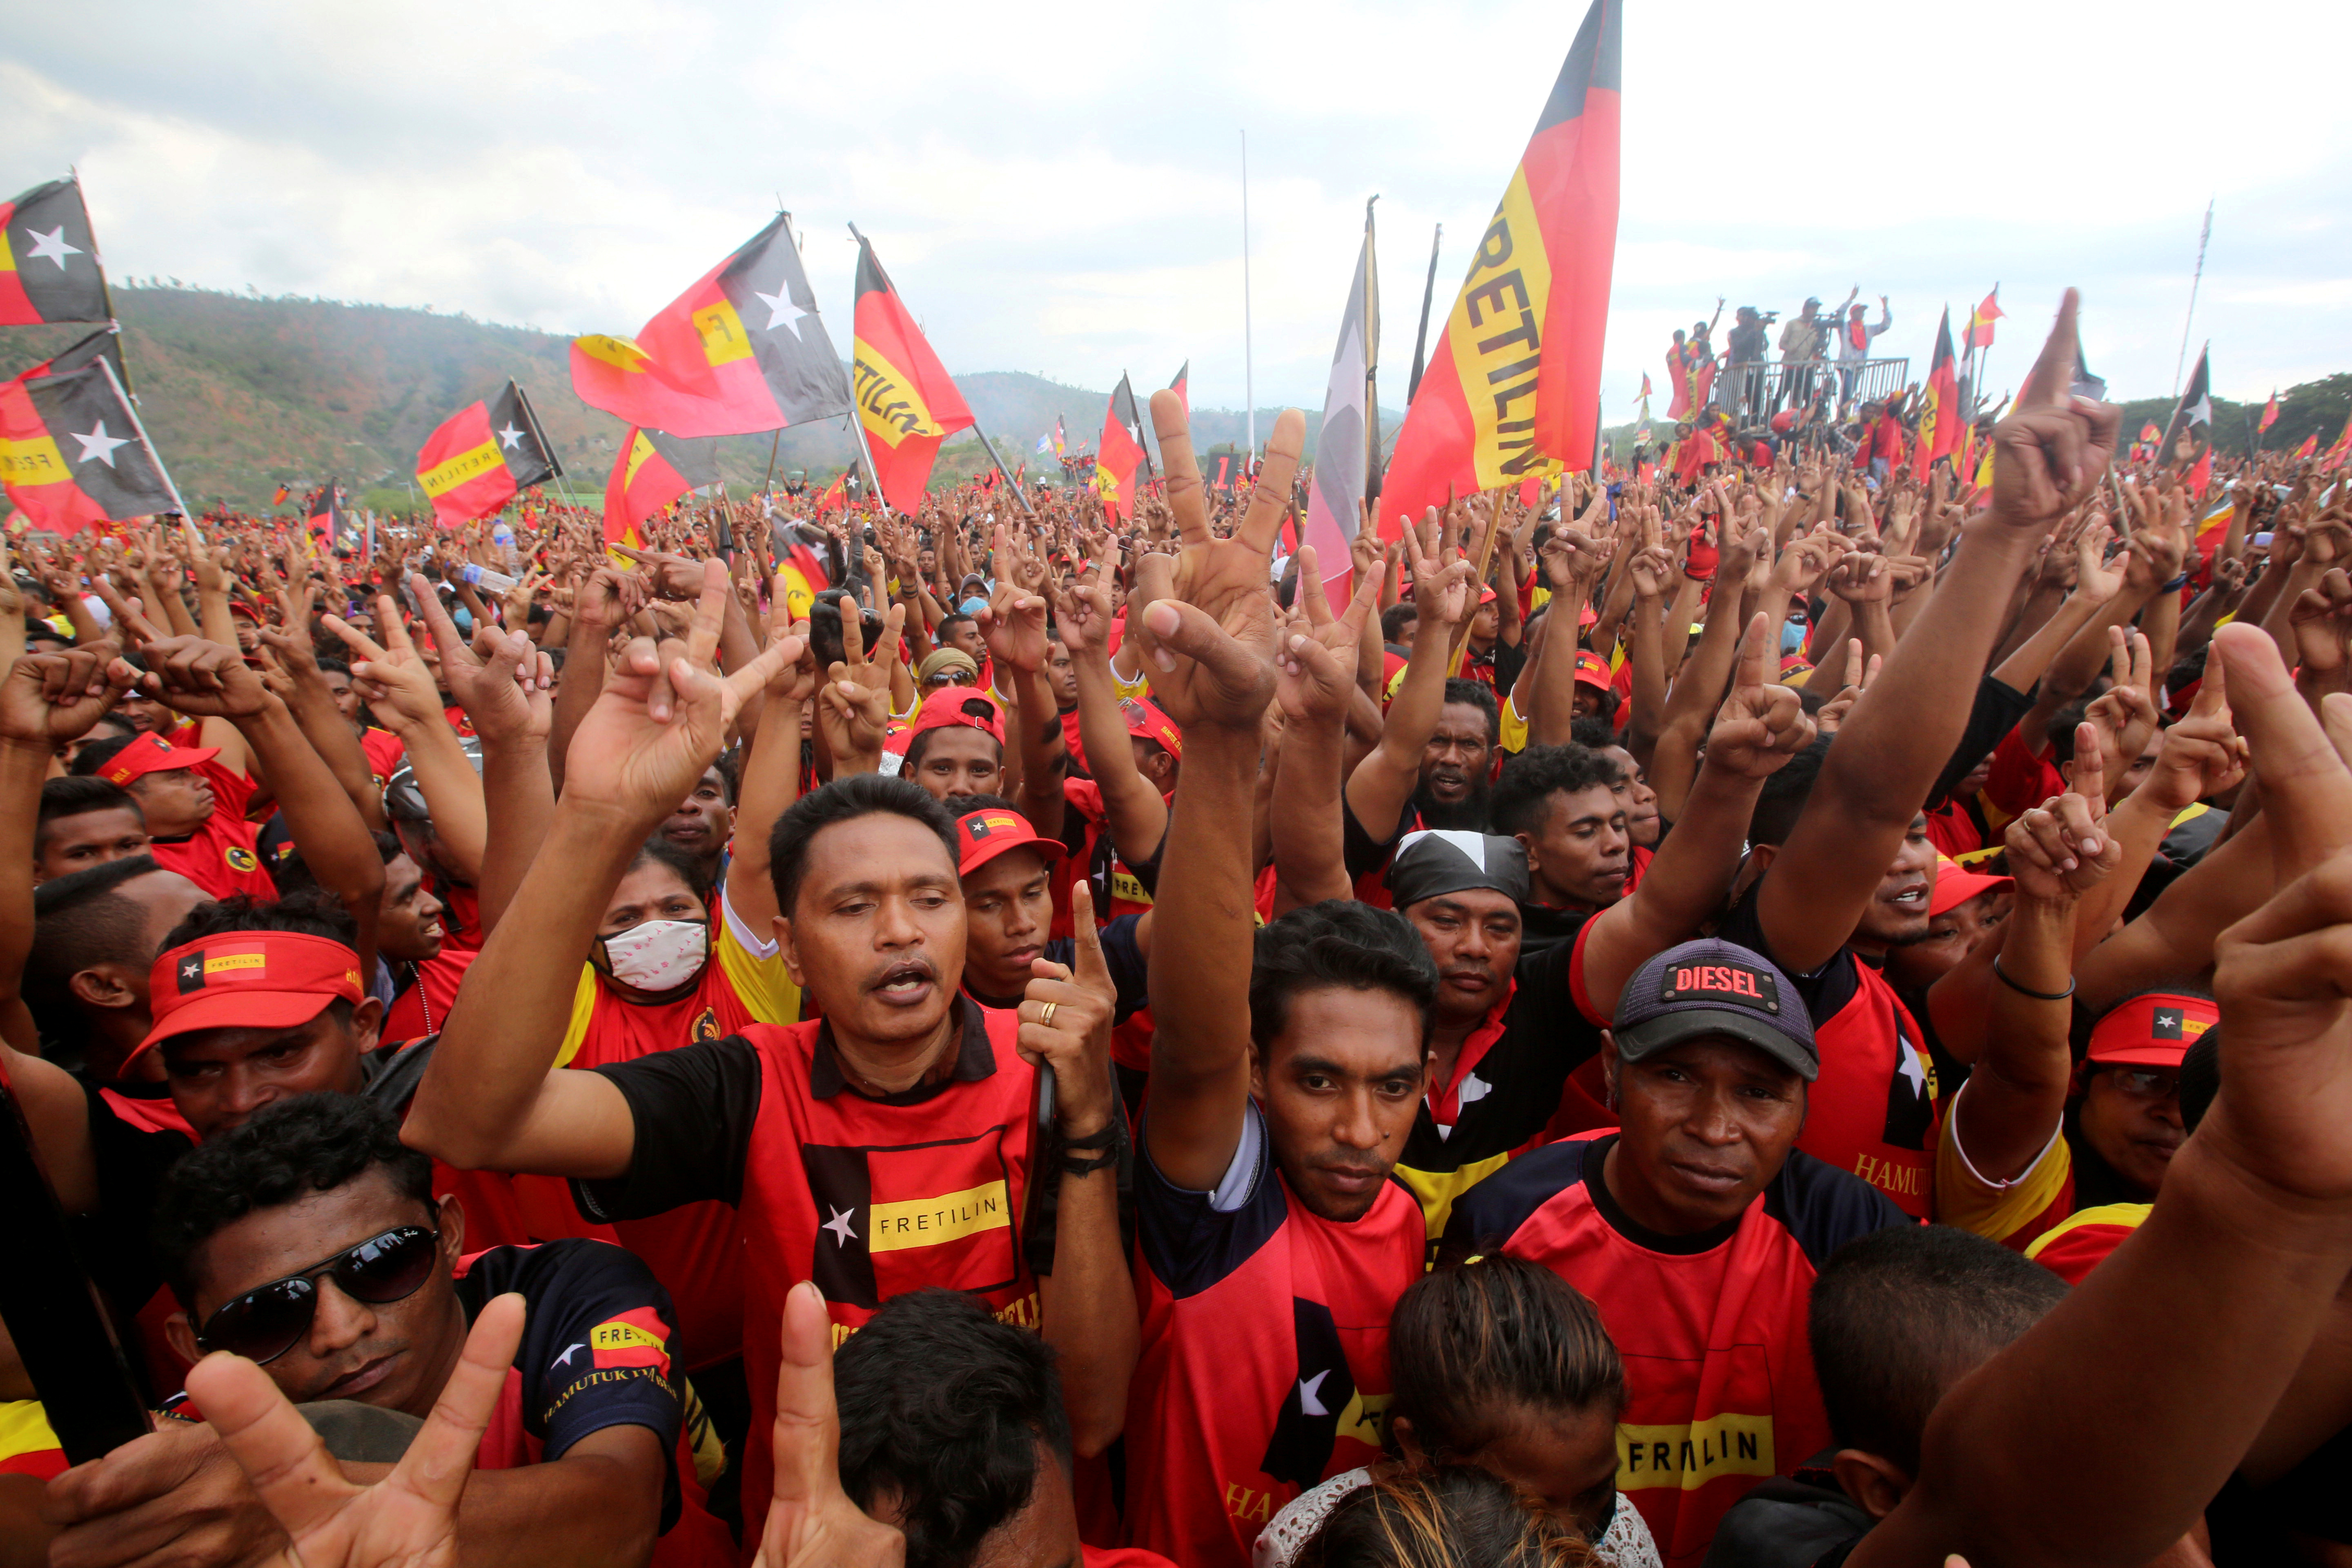 Supporters of the Revolutionary Front for an Independent East Timor (FRETILIN) political party shout during a rally on the last day of campaigning ahead of this weekend's parliamentary elections in Dili, East Timor, July 19, 2017.